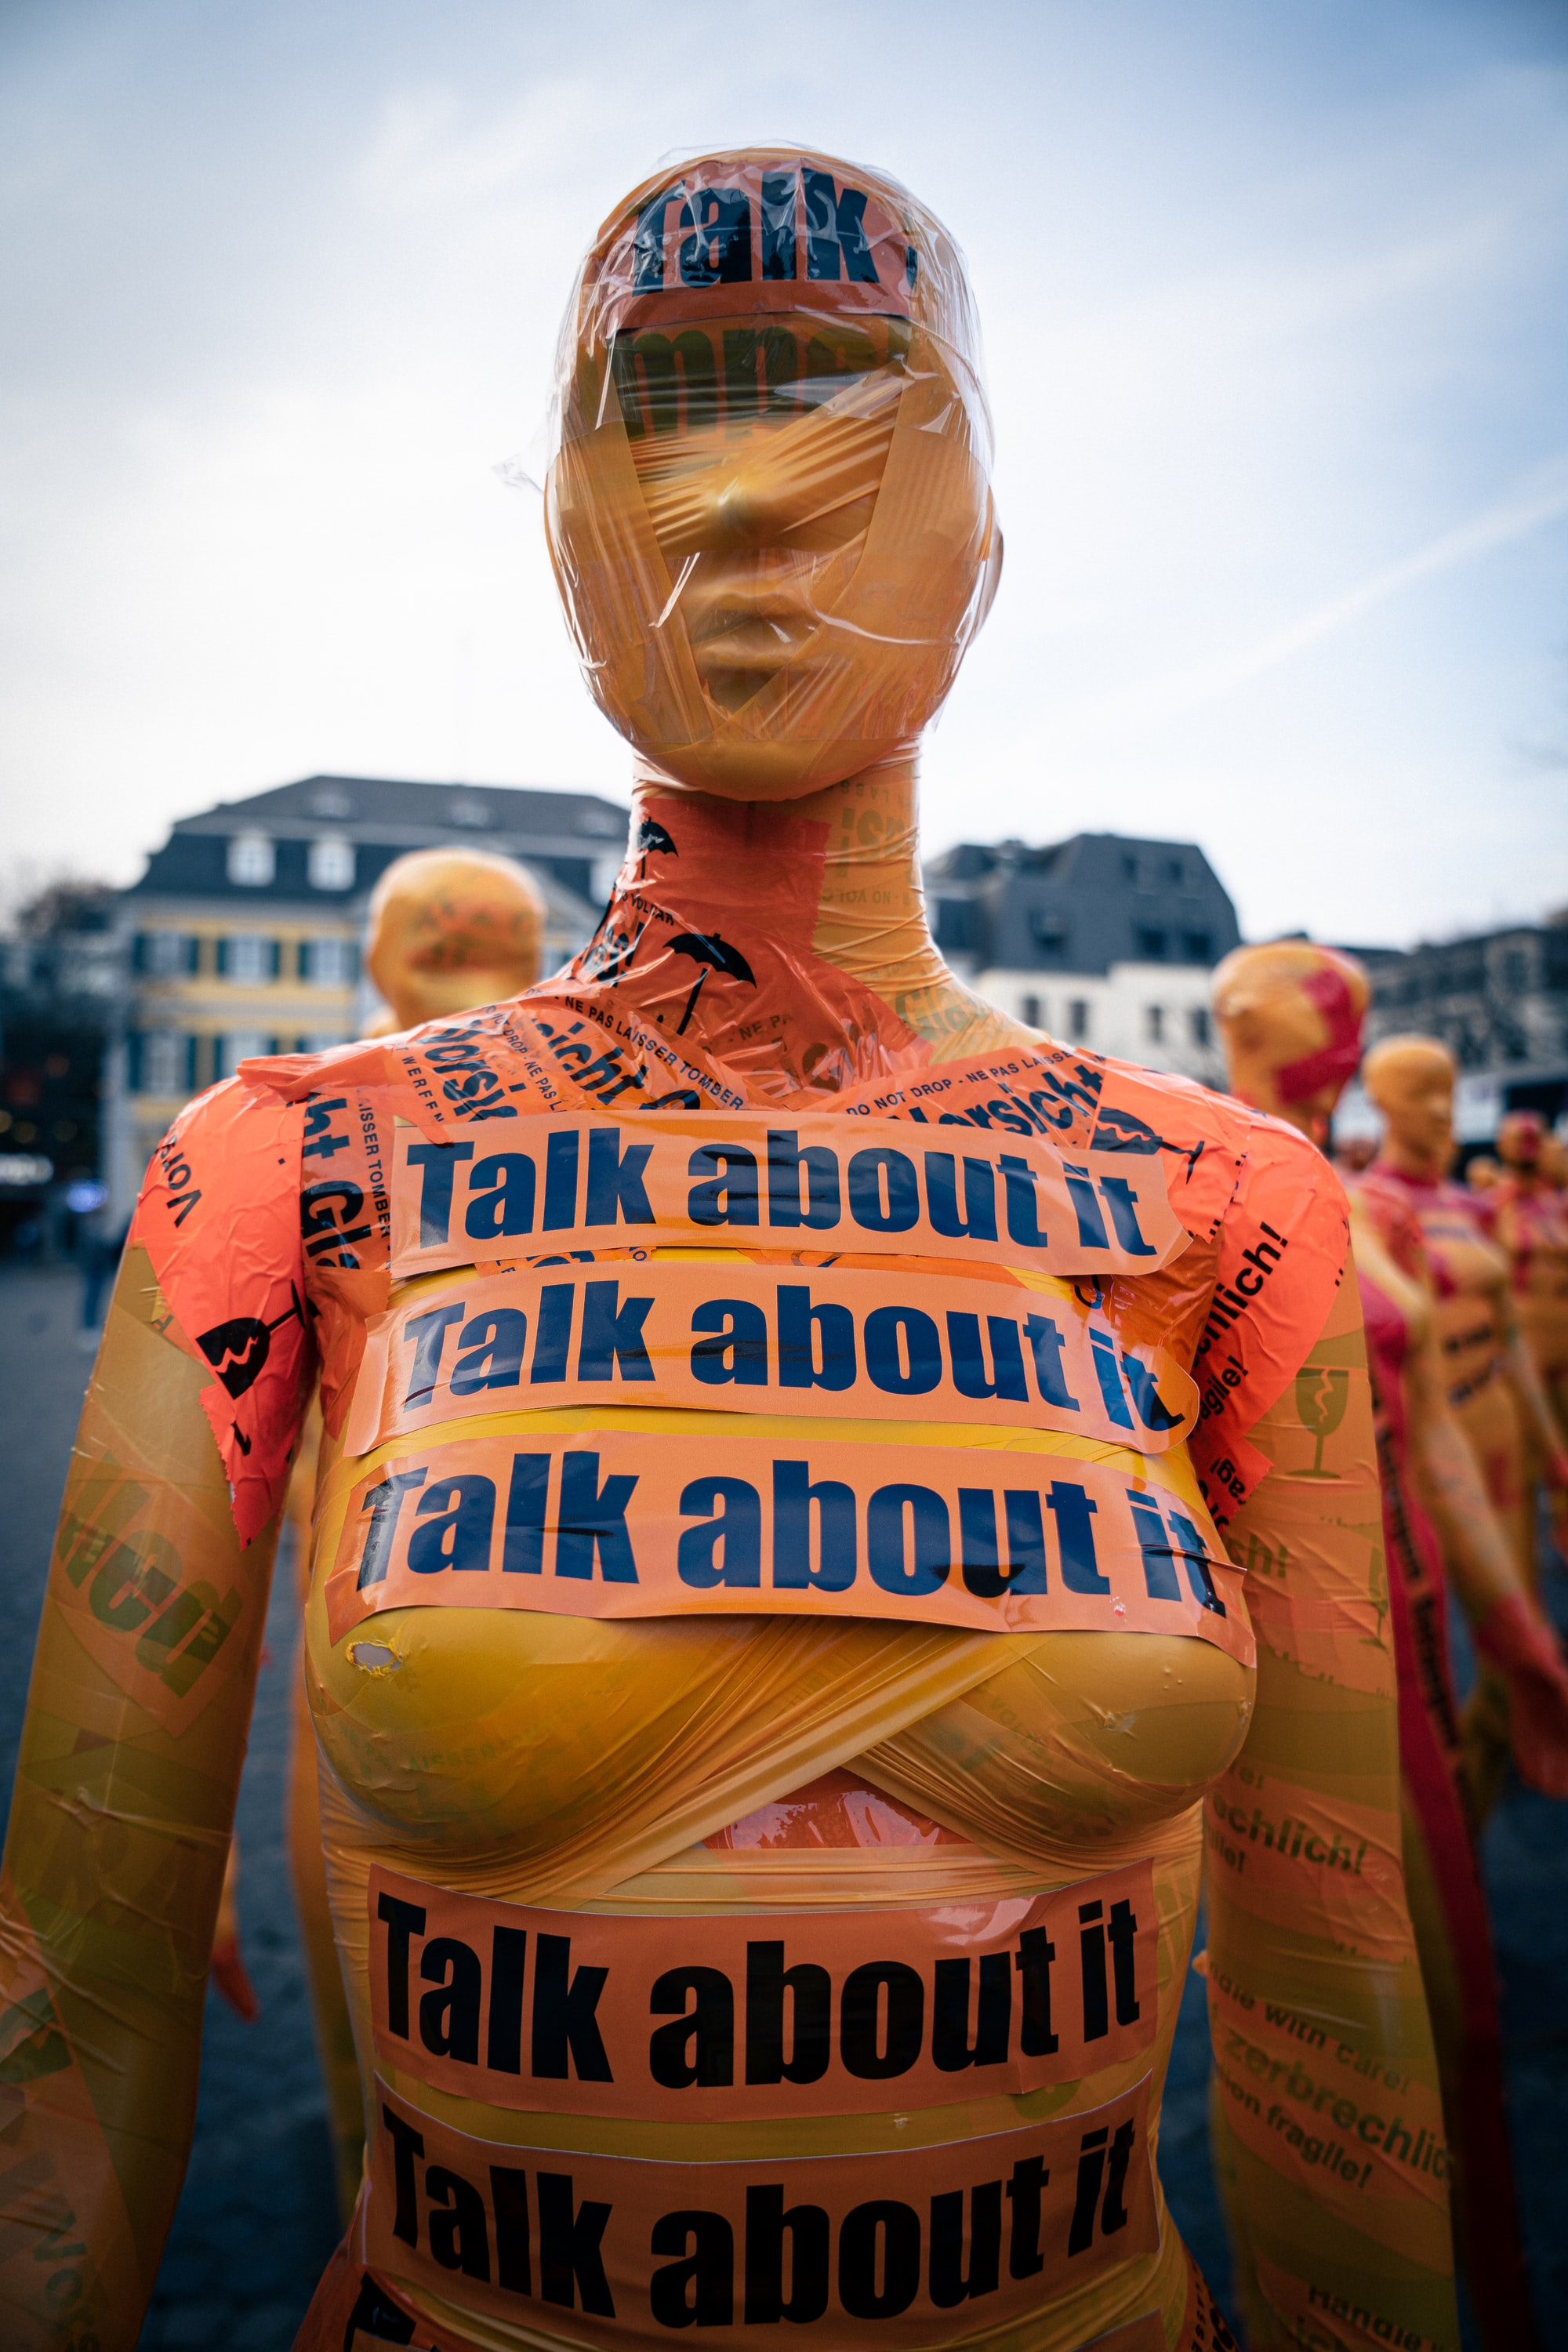 Talk about it - November 25 is the international day against domestic violence. This photo was taken in Bonn, displaying the work of an artist.